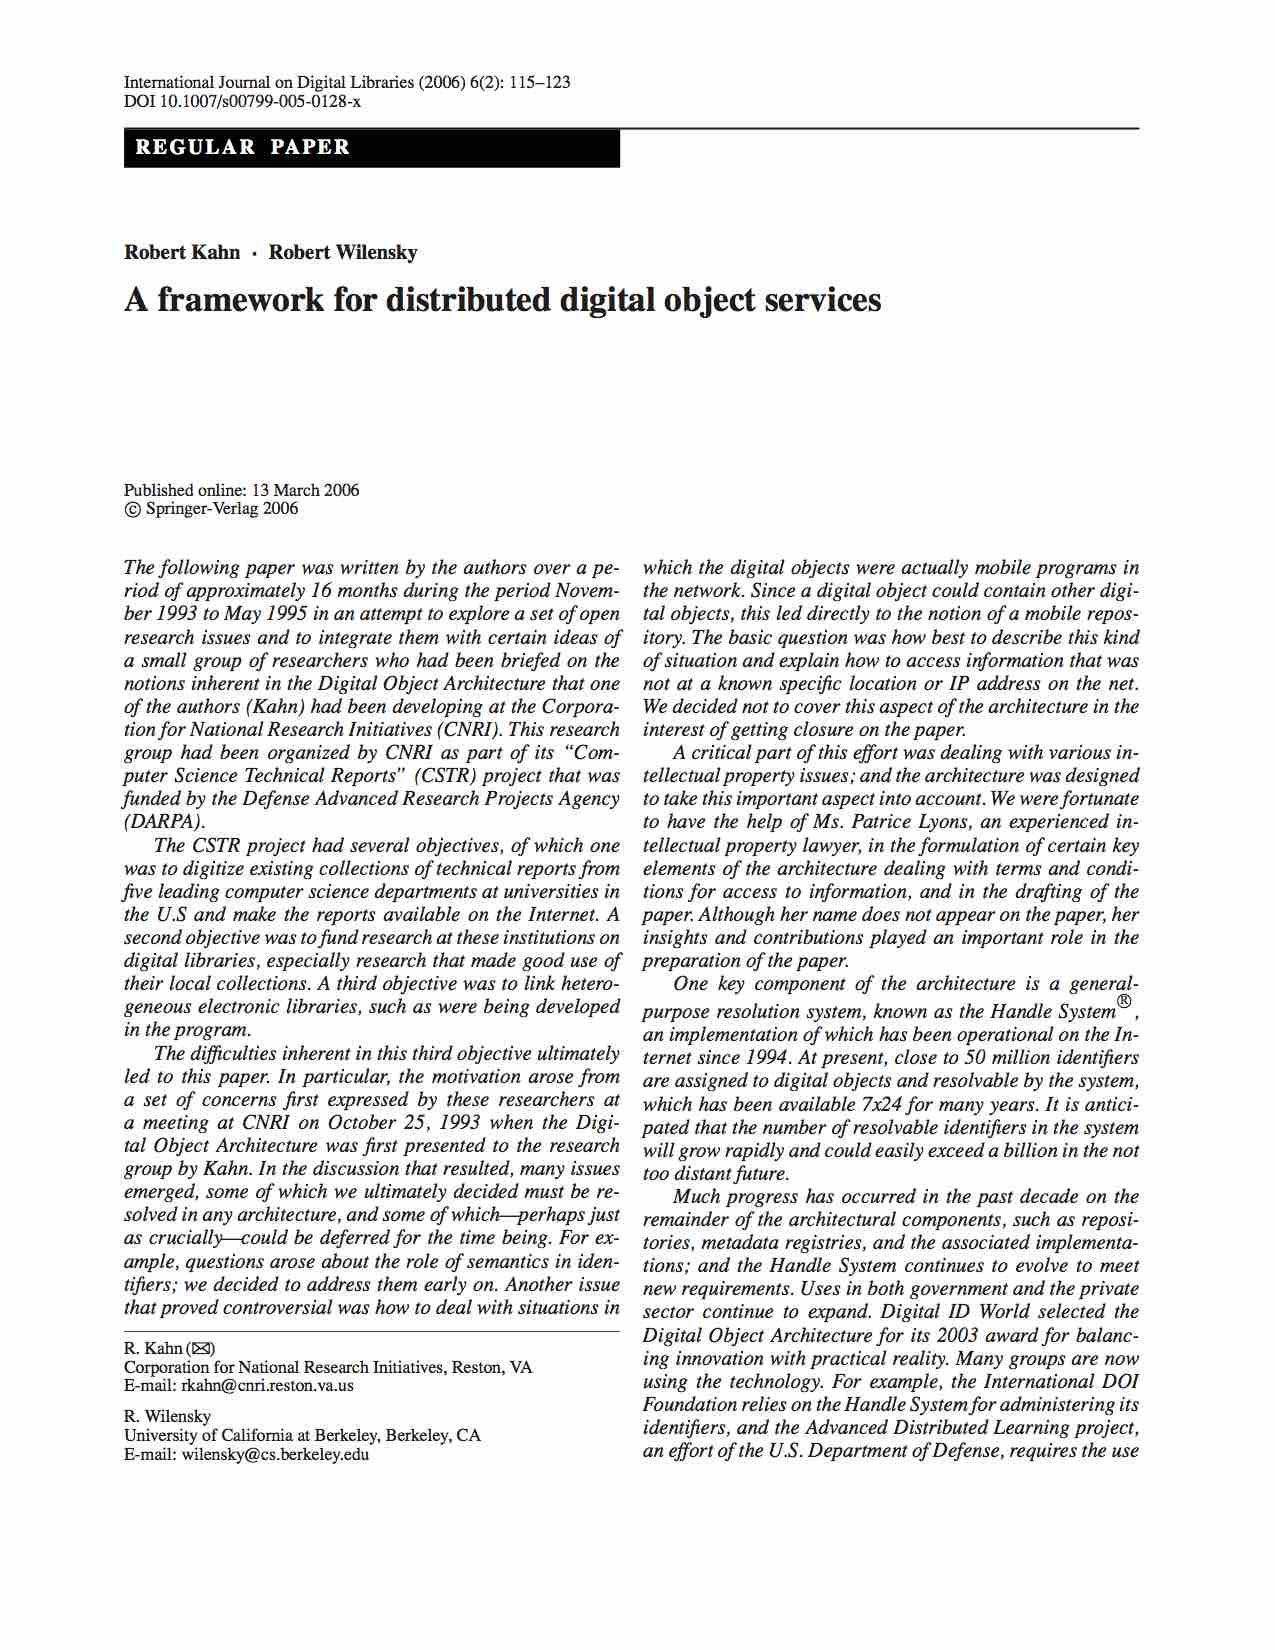 A Framework for Distributed Digital Object Services